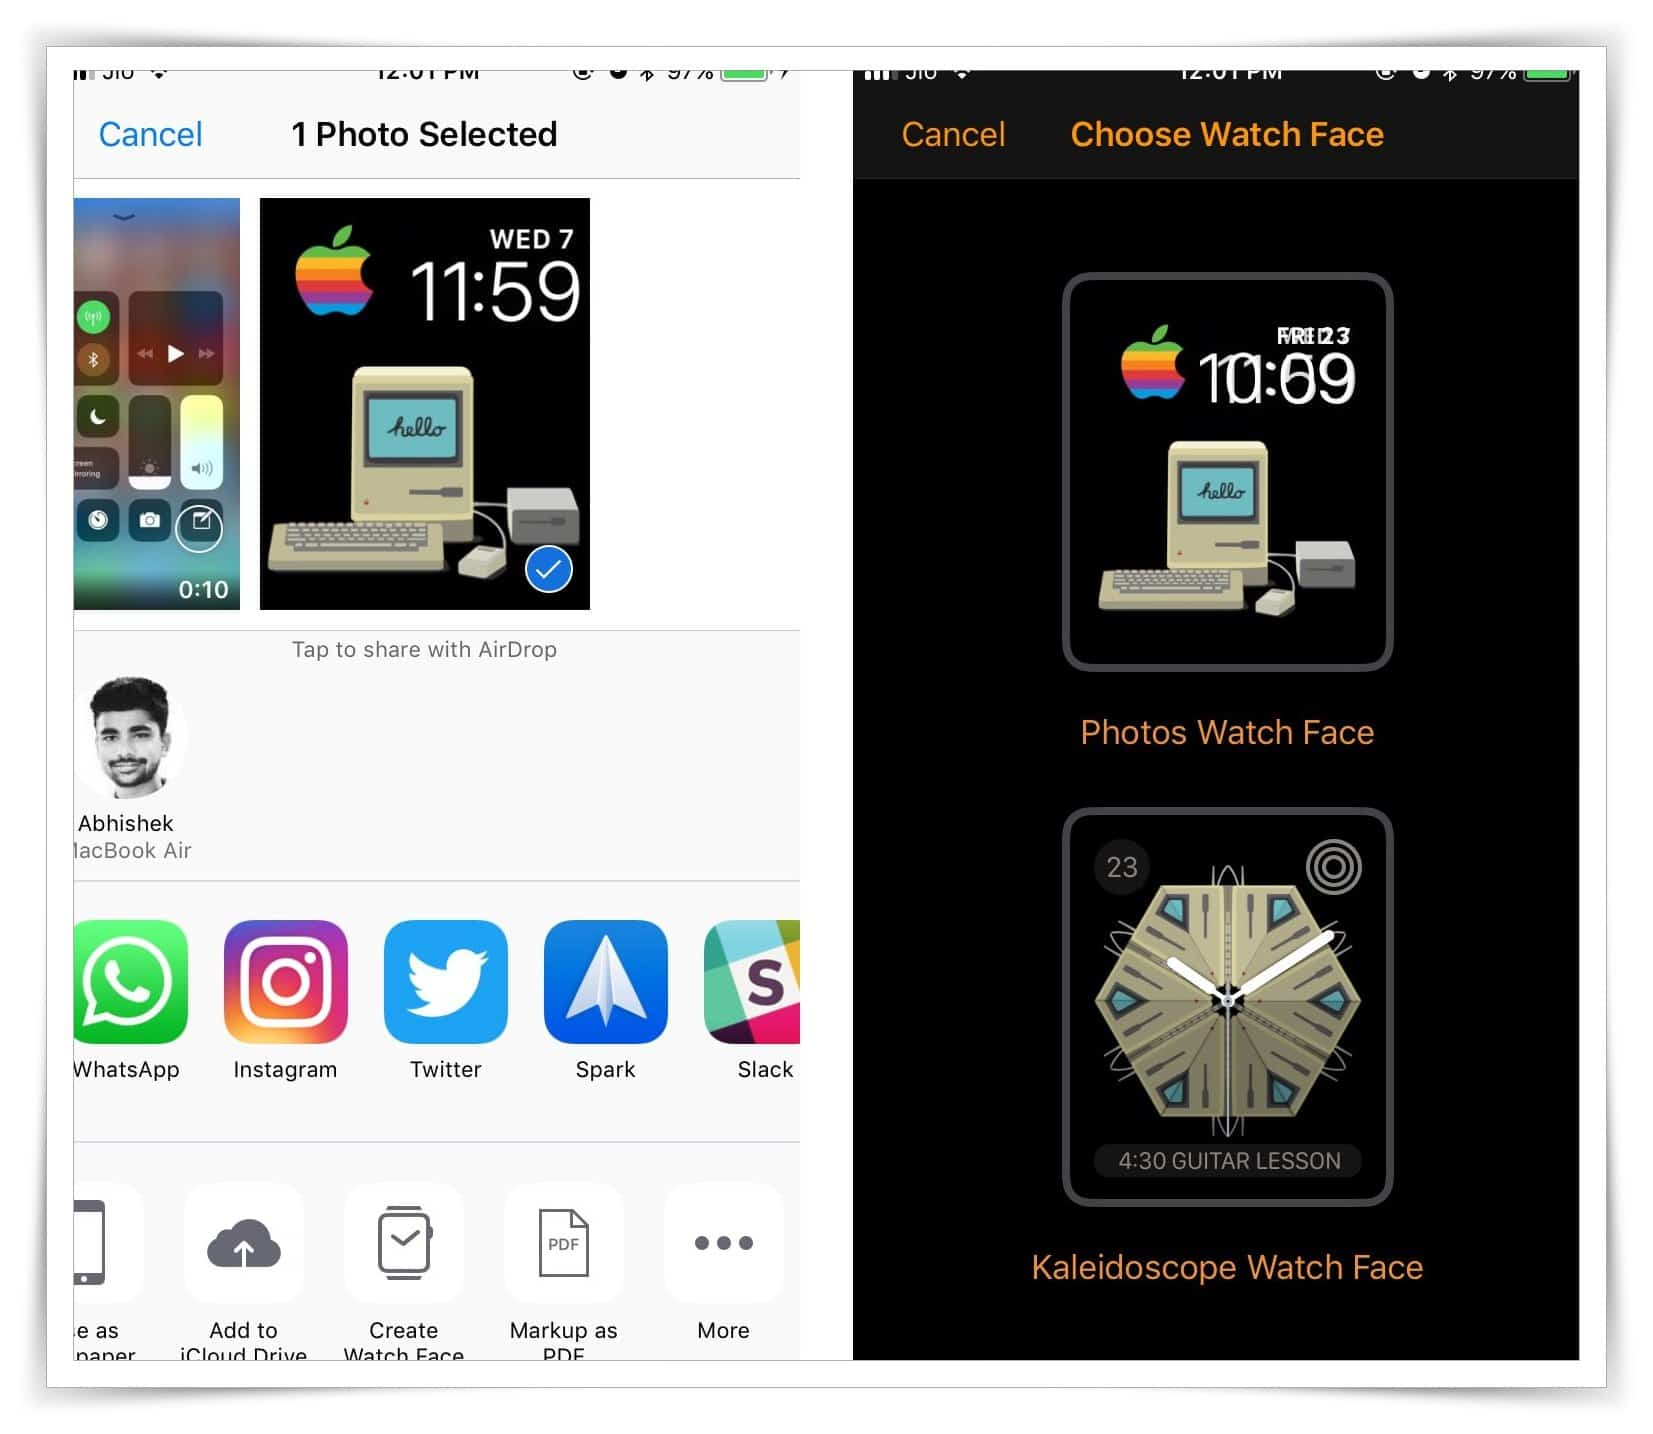 Use a photo from your iPhone as a Watch Face